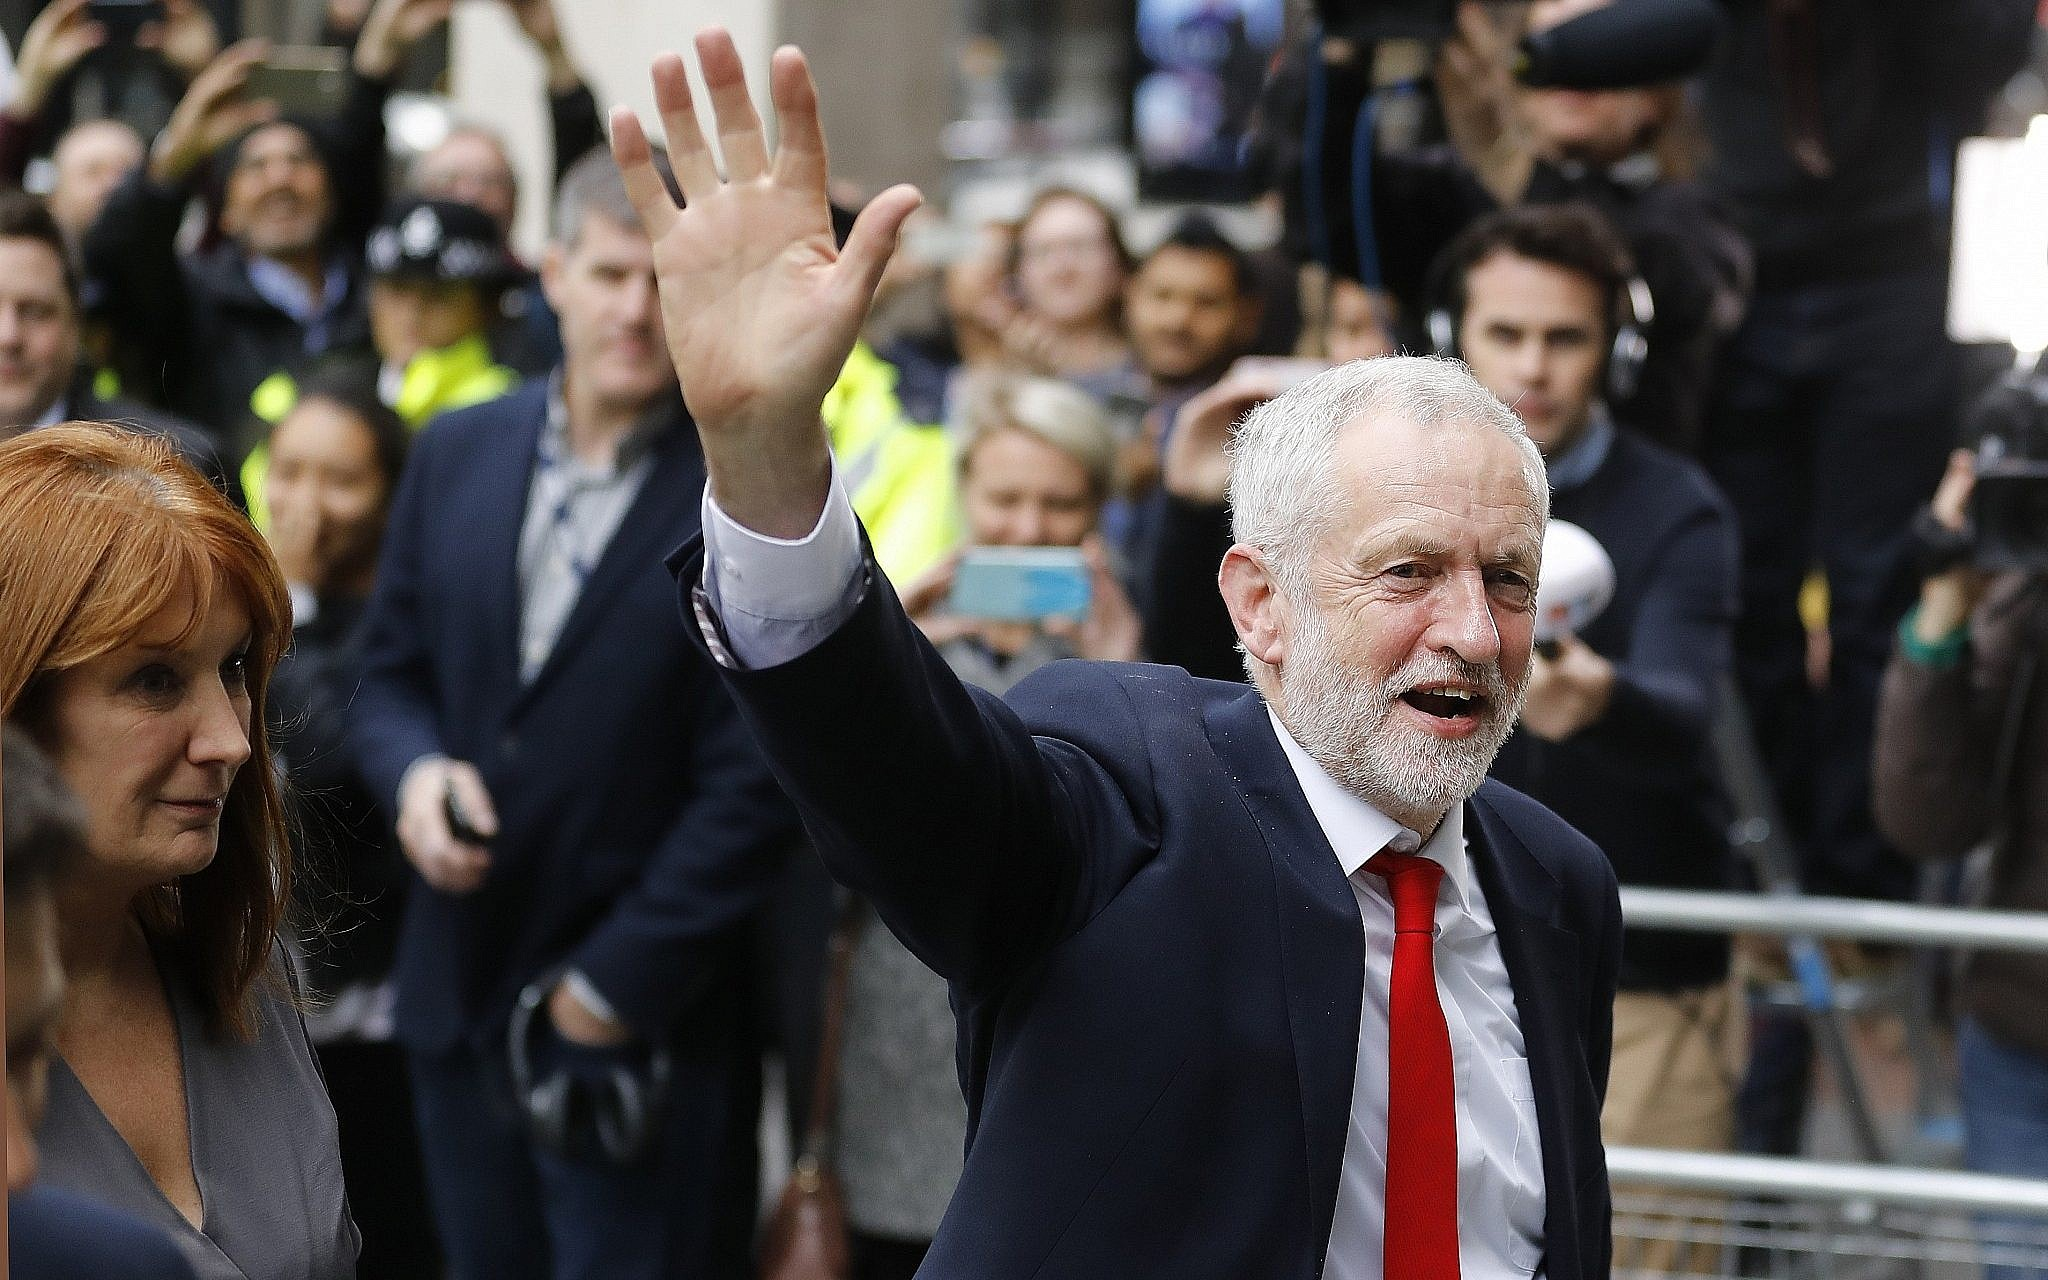 Britain's Labour leader Jeremy Corbyn waves as he arrives at party headquarters in London, Friday, June 9, 2017, after the general elections (AP Photo/Frank Augstein)